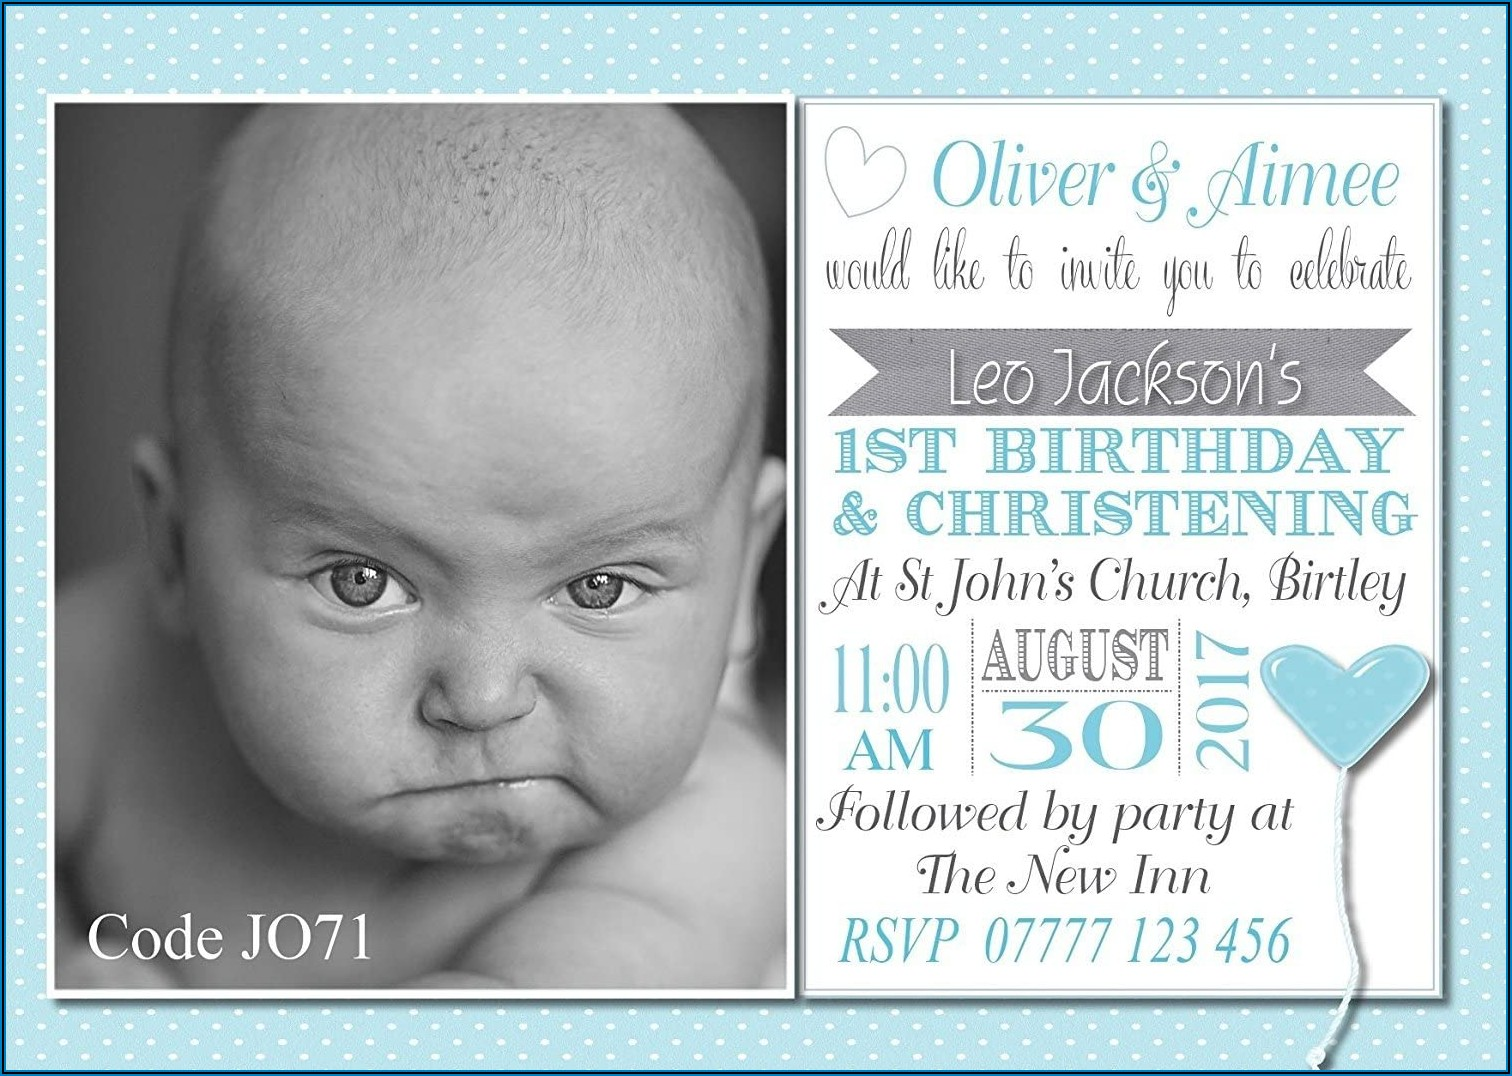 Invitation Card Design For 1st Birthday And Christening